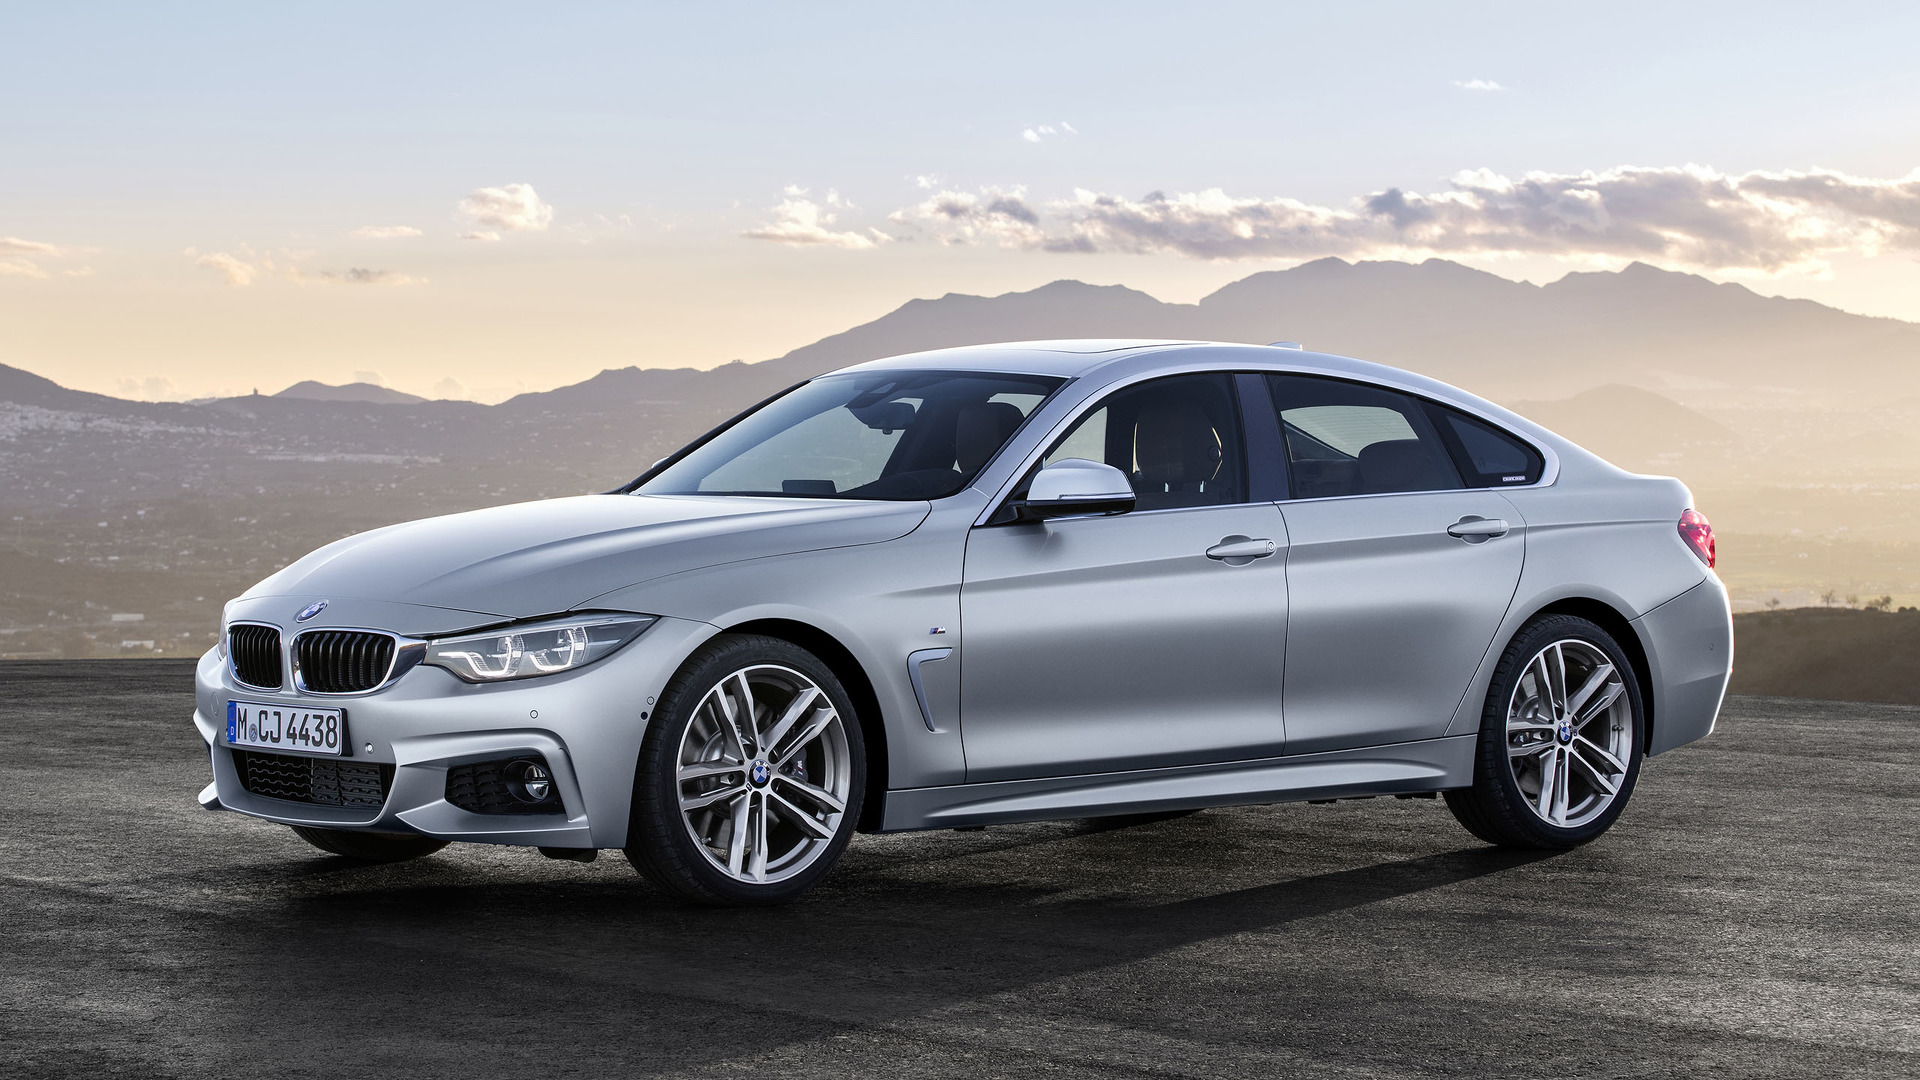 2019 BMW 430i xDrive Gran Coupe Test Drive and Review ...